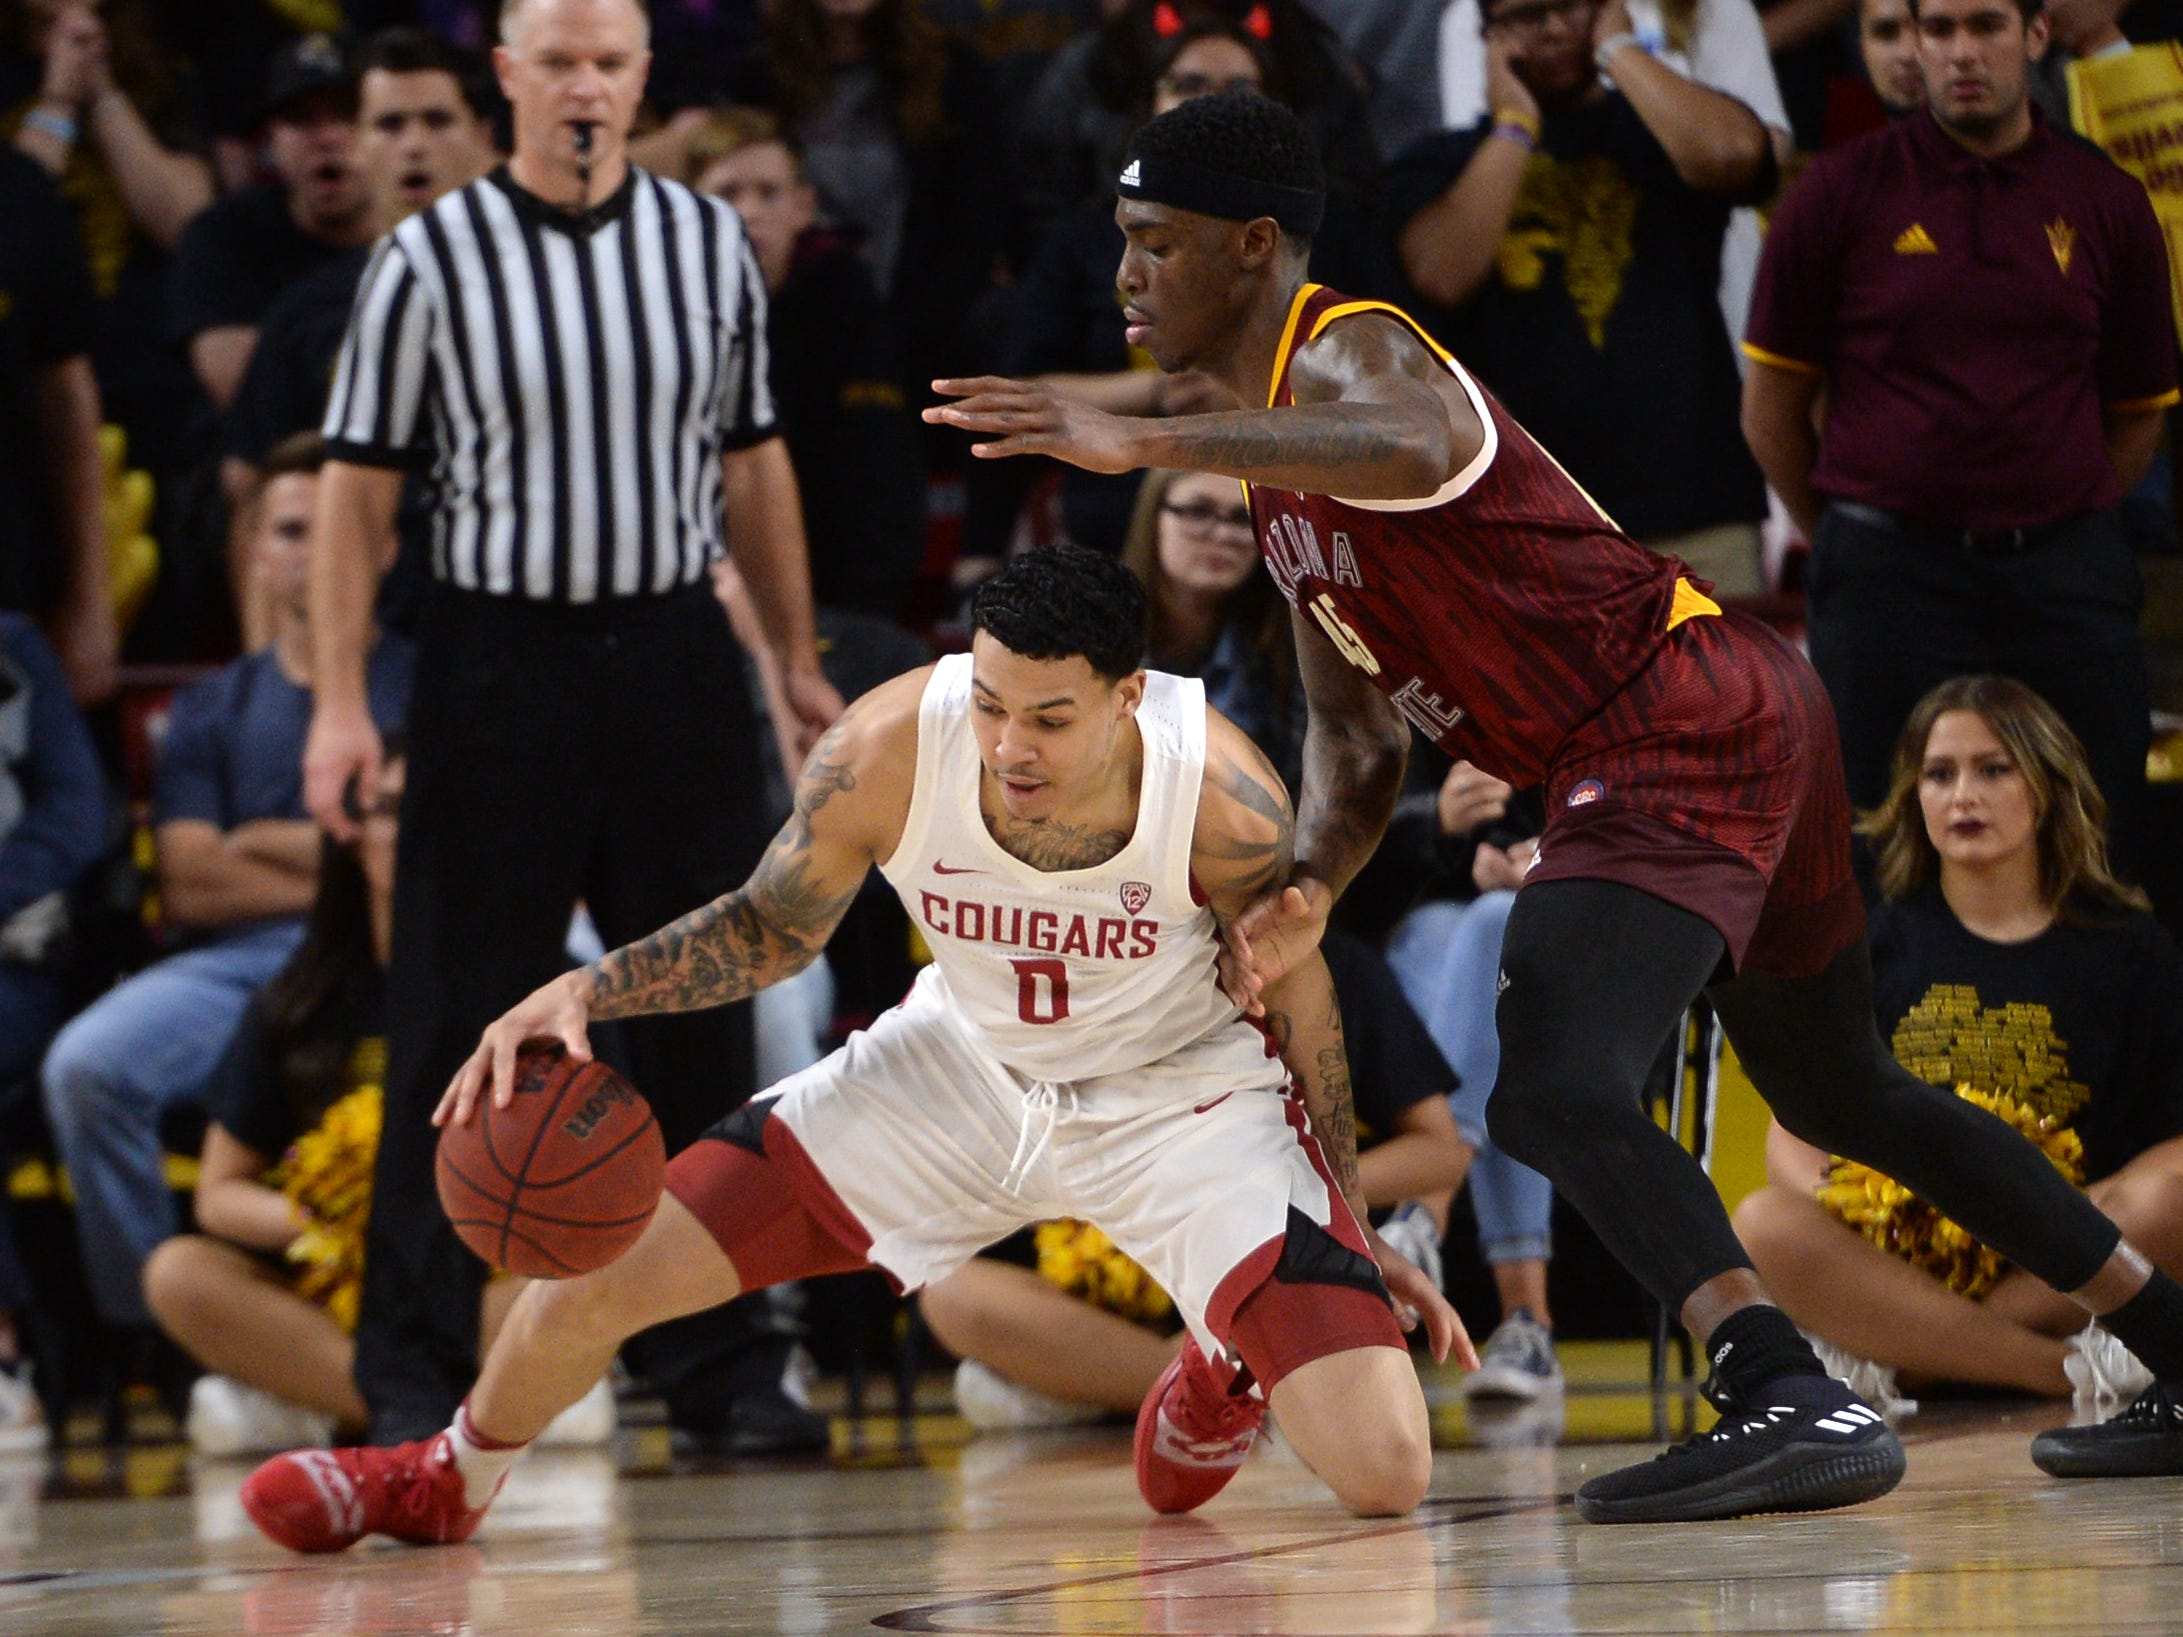 Feb 7, 2019; Tempe, AZ, USA; Washington State Cougars forward Isaiah Wade (0) protects the ball from Arizona State Sun Devils forward Zylan Cheatham (45) during the second half at Wells Fargo Arena (AZ).